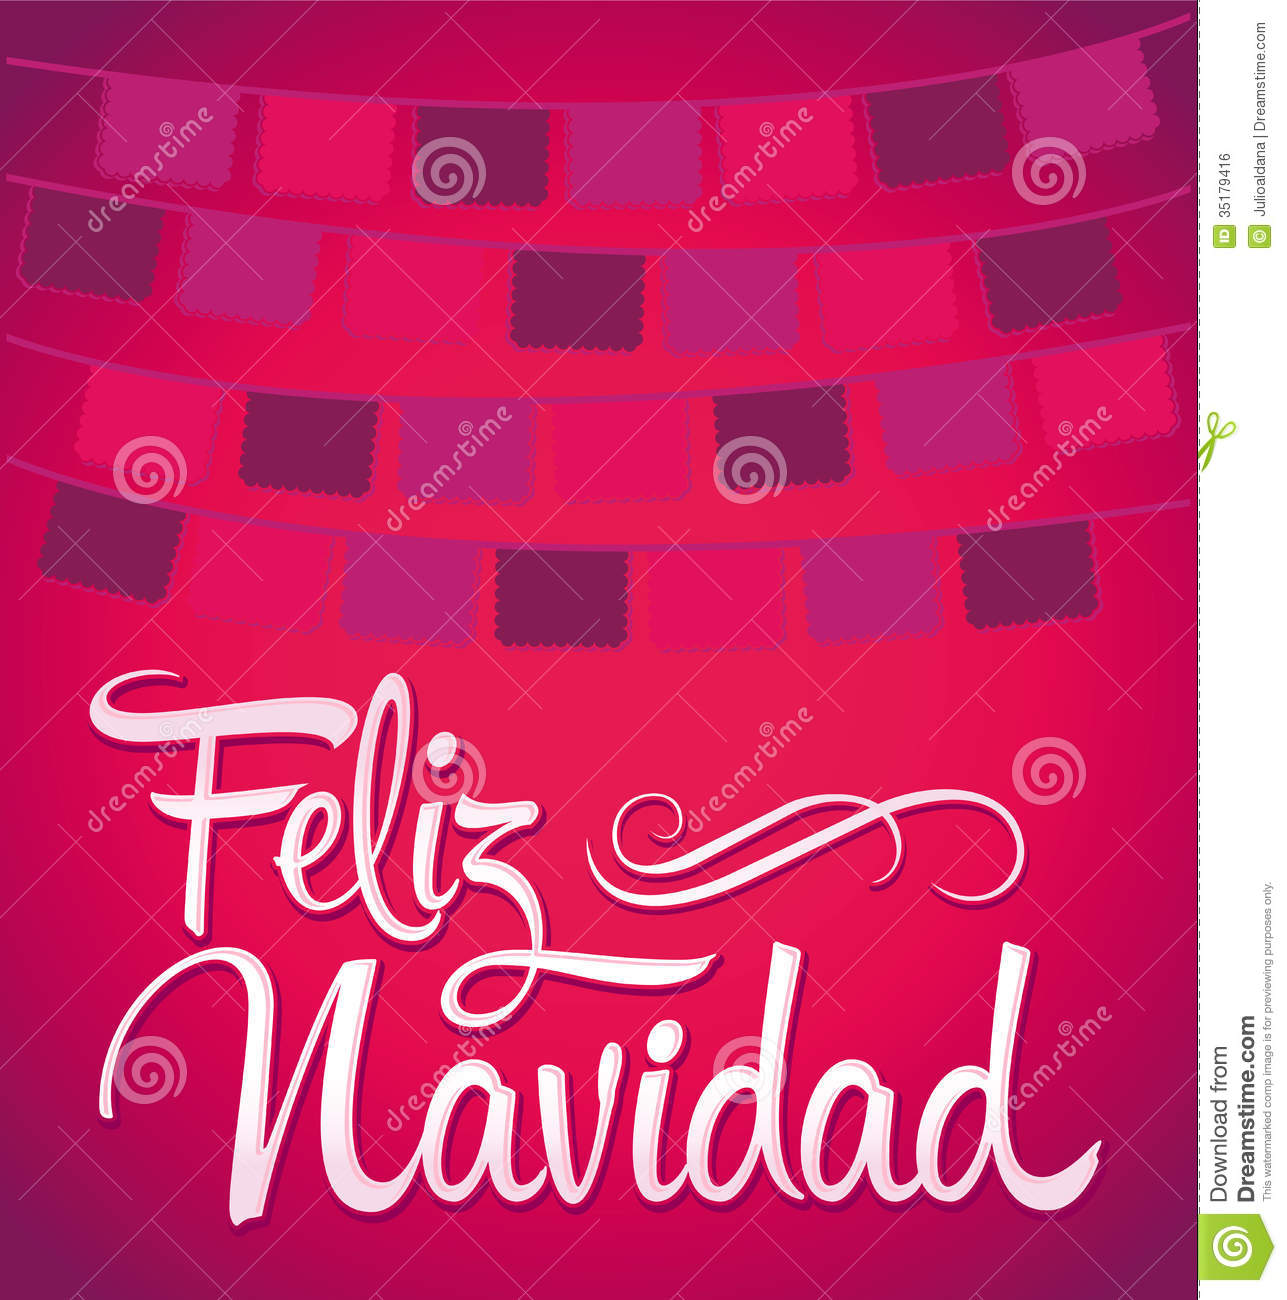 Feliz navidad merry christmas spanish text vector calligraphic